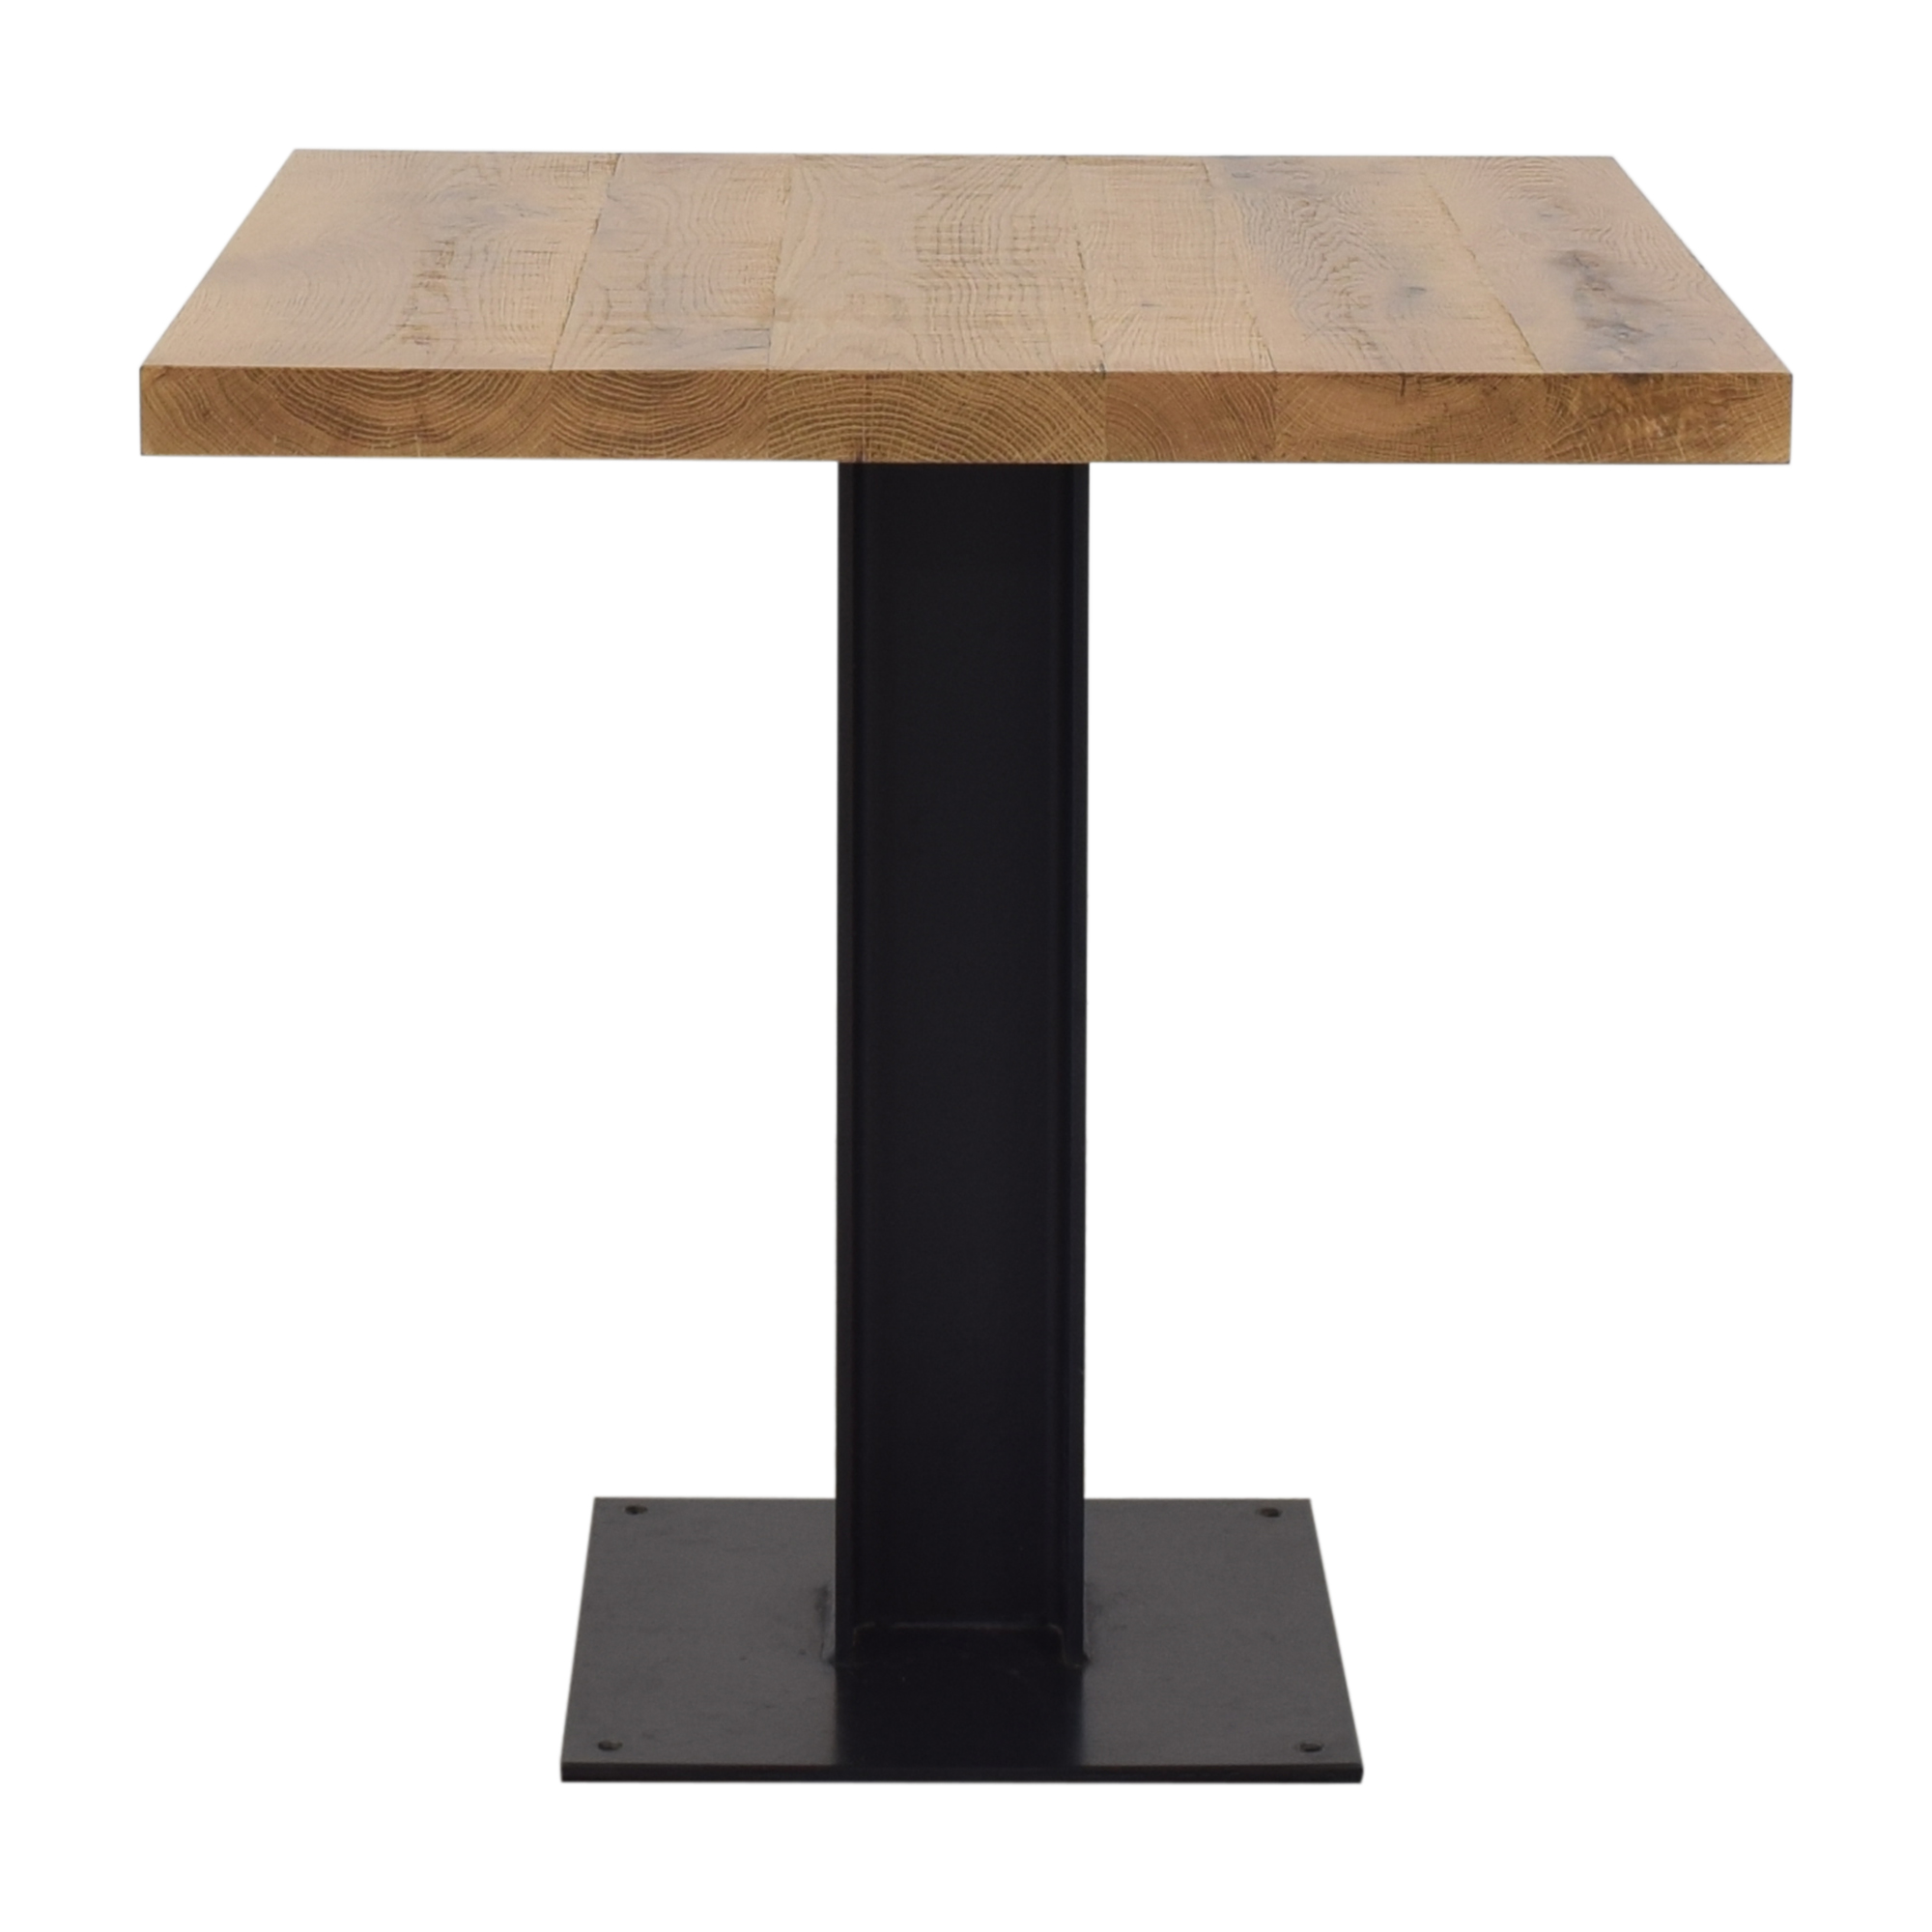 Crow Works Crow Works Fixed I-Beam Square Table on sale